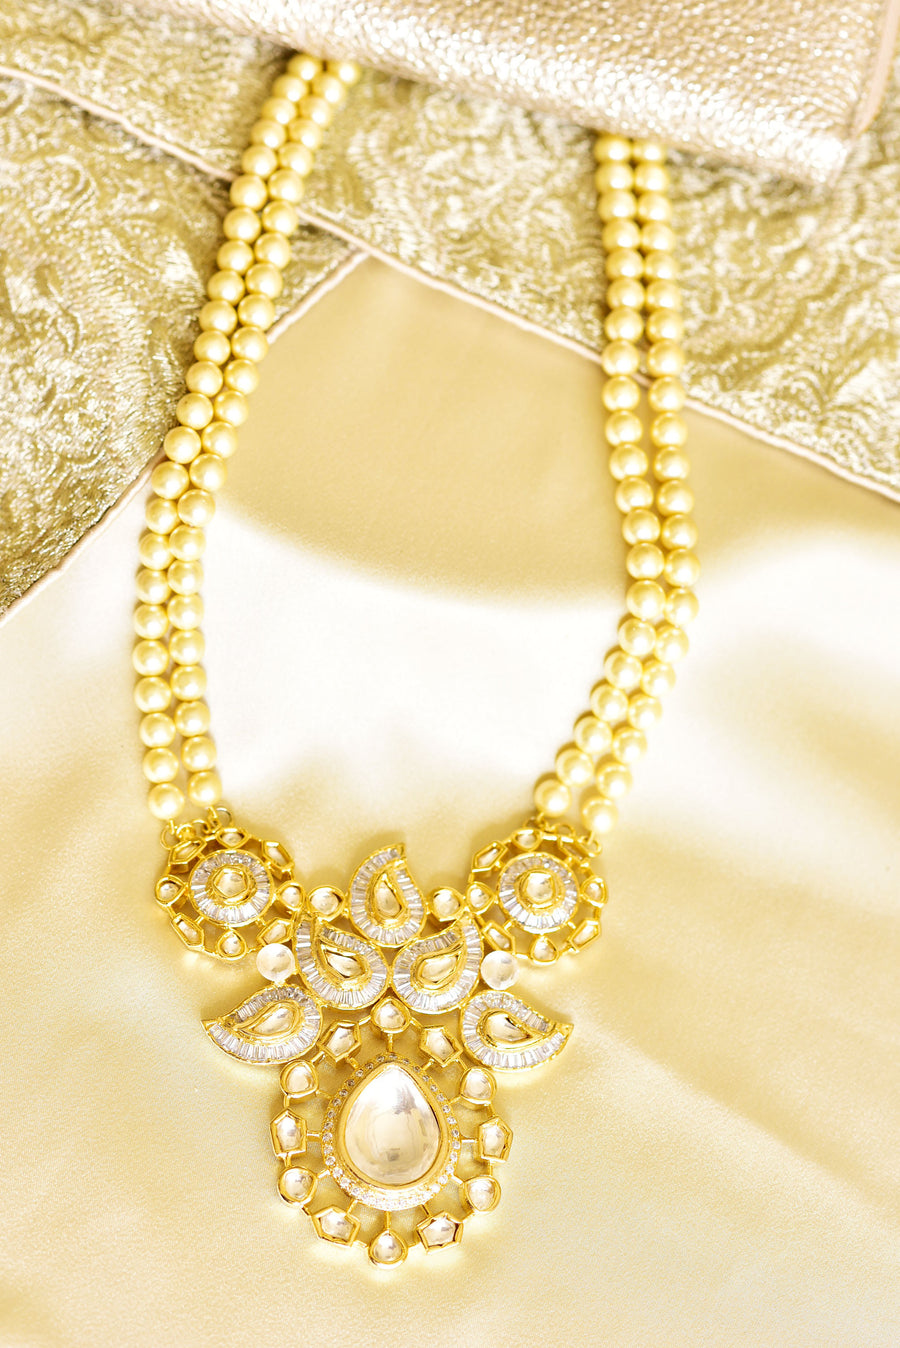 Pendant Necklace with Pearls